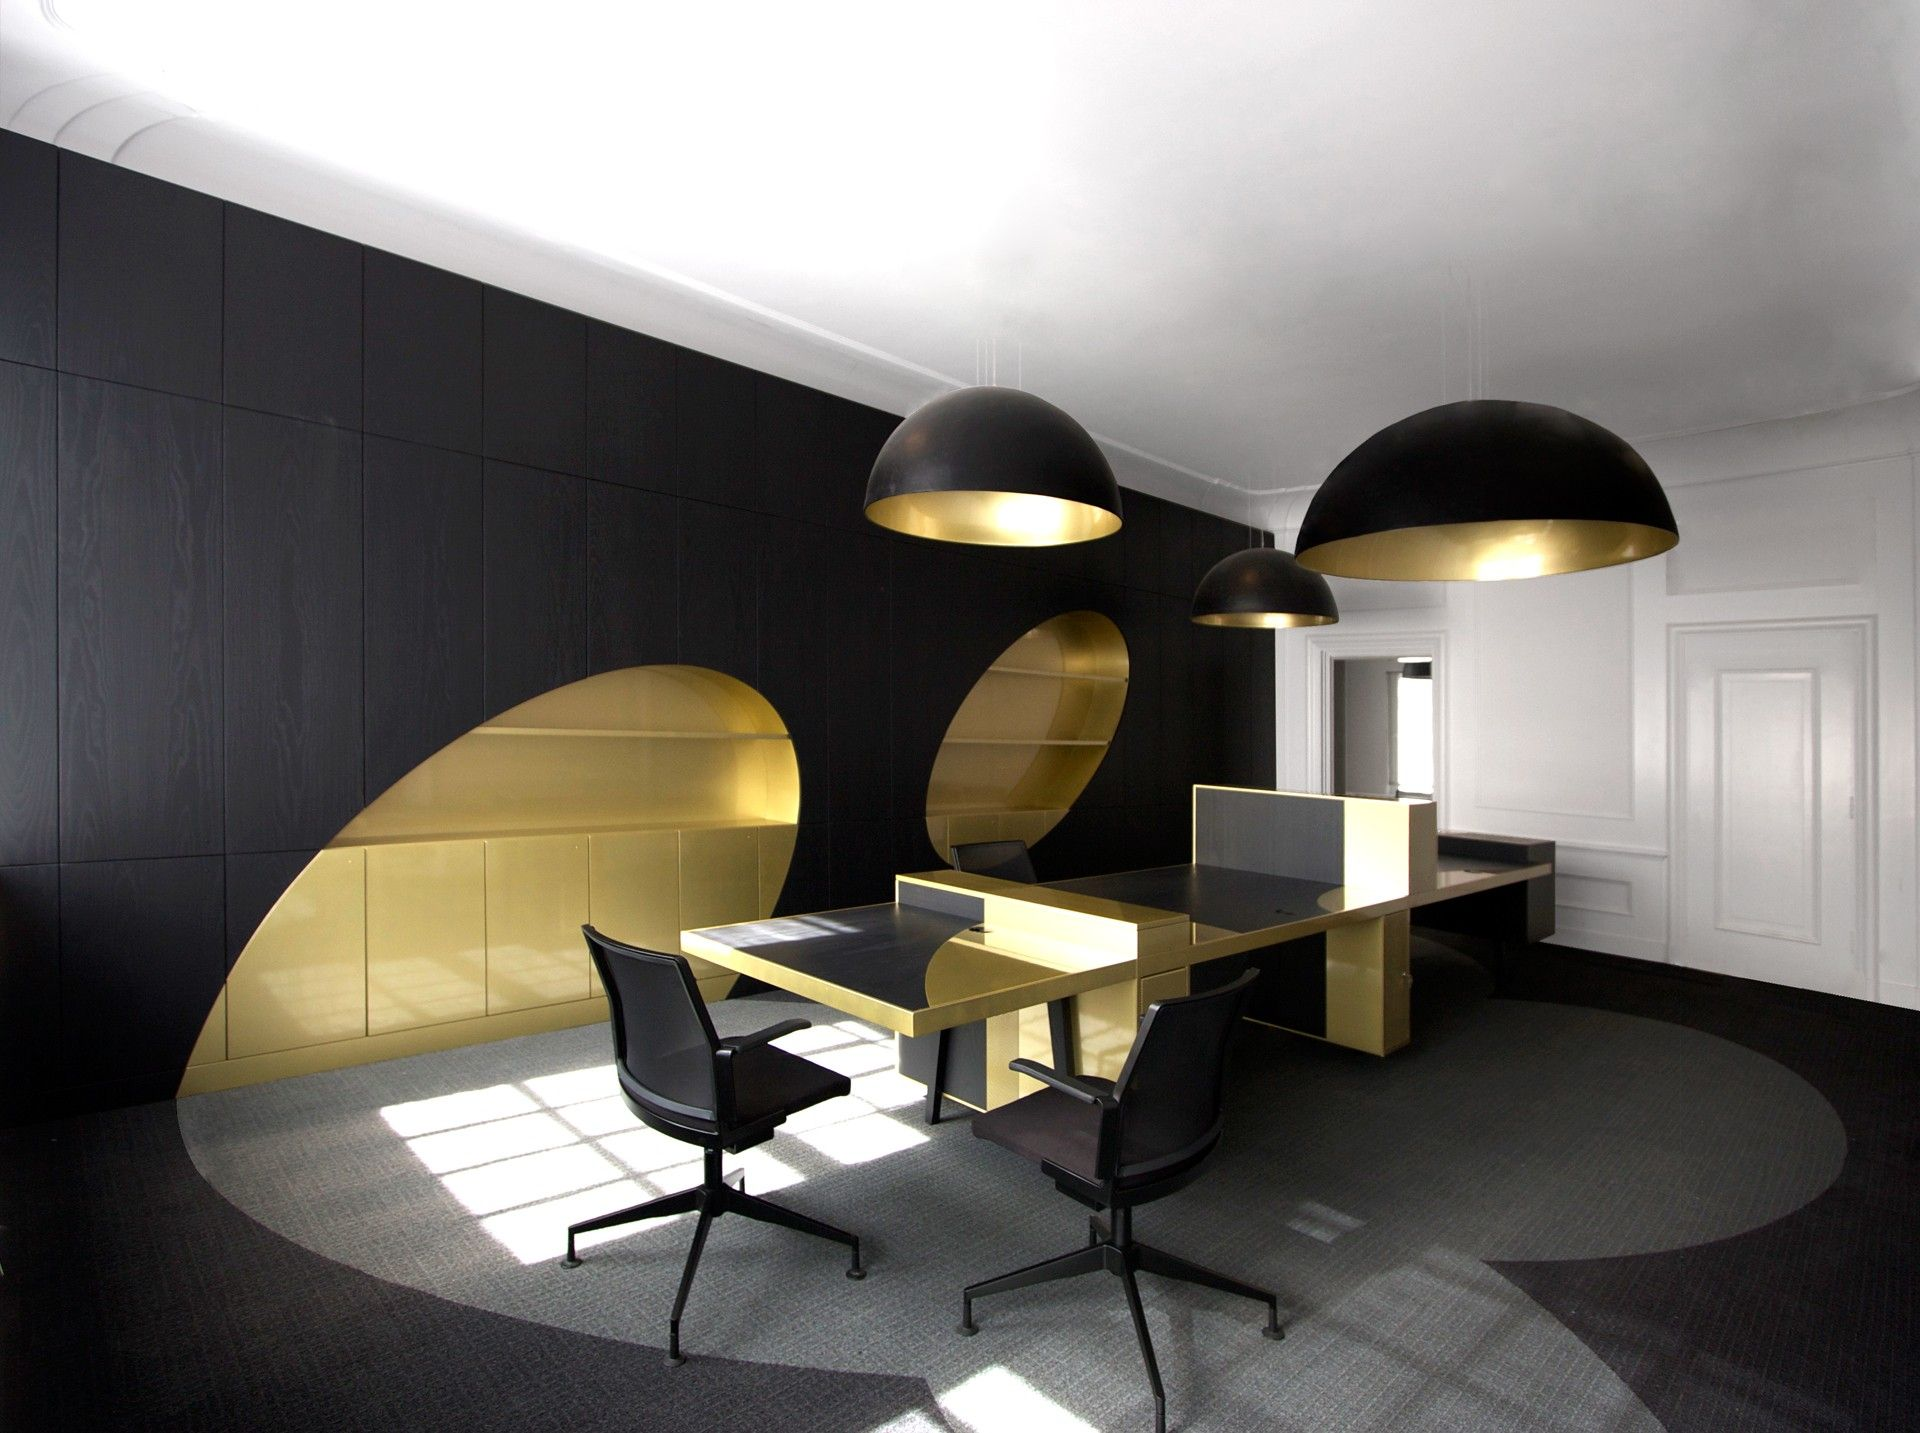 i29 interior architects office 00 working spaces furniture